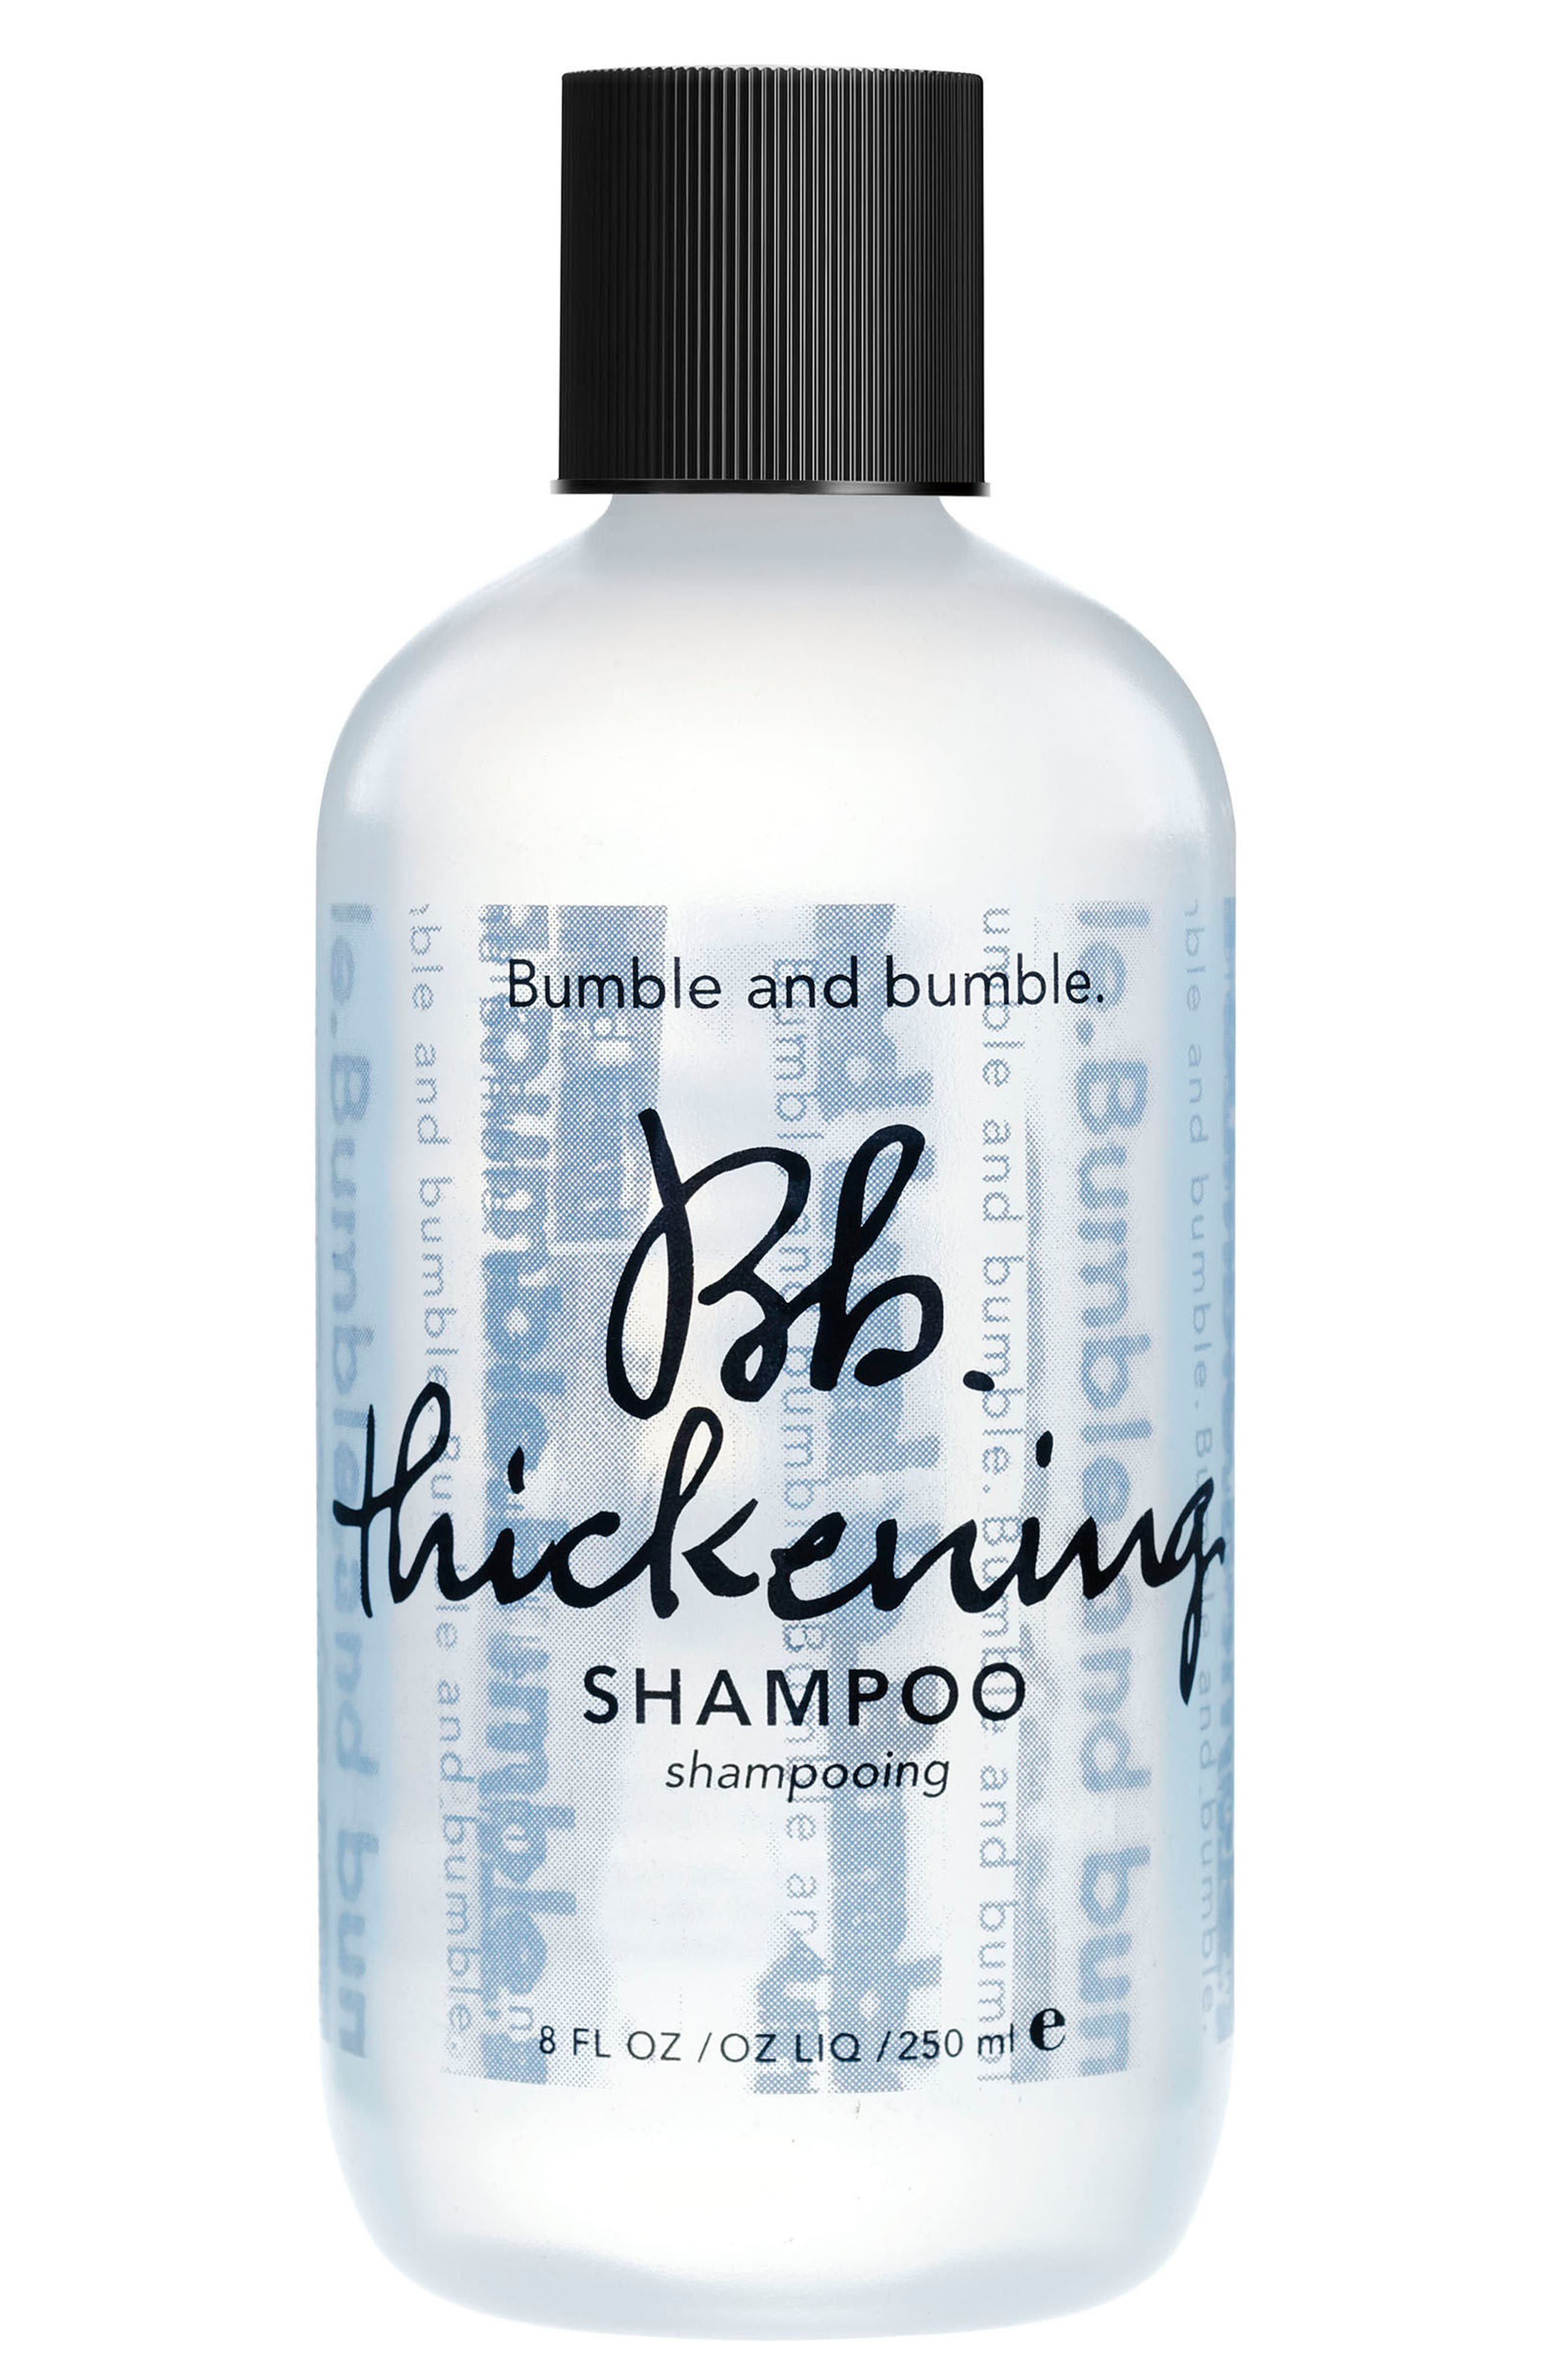 Bumble and bumble Thickening Shampoo